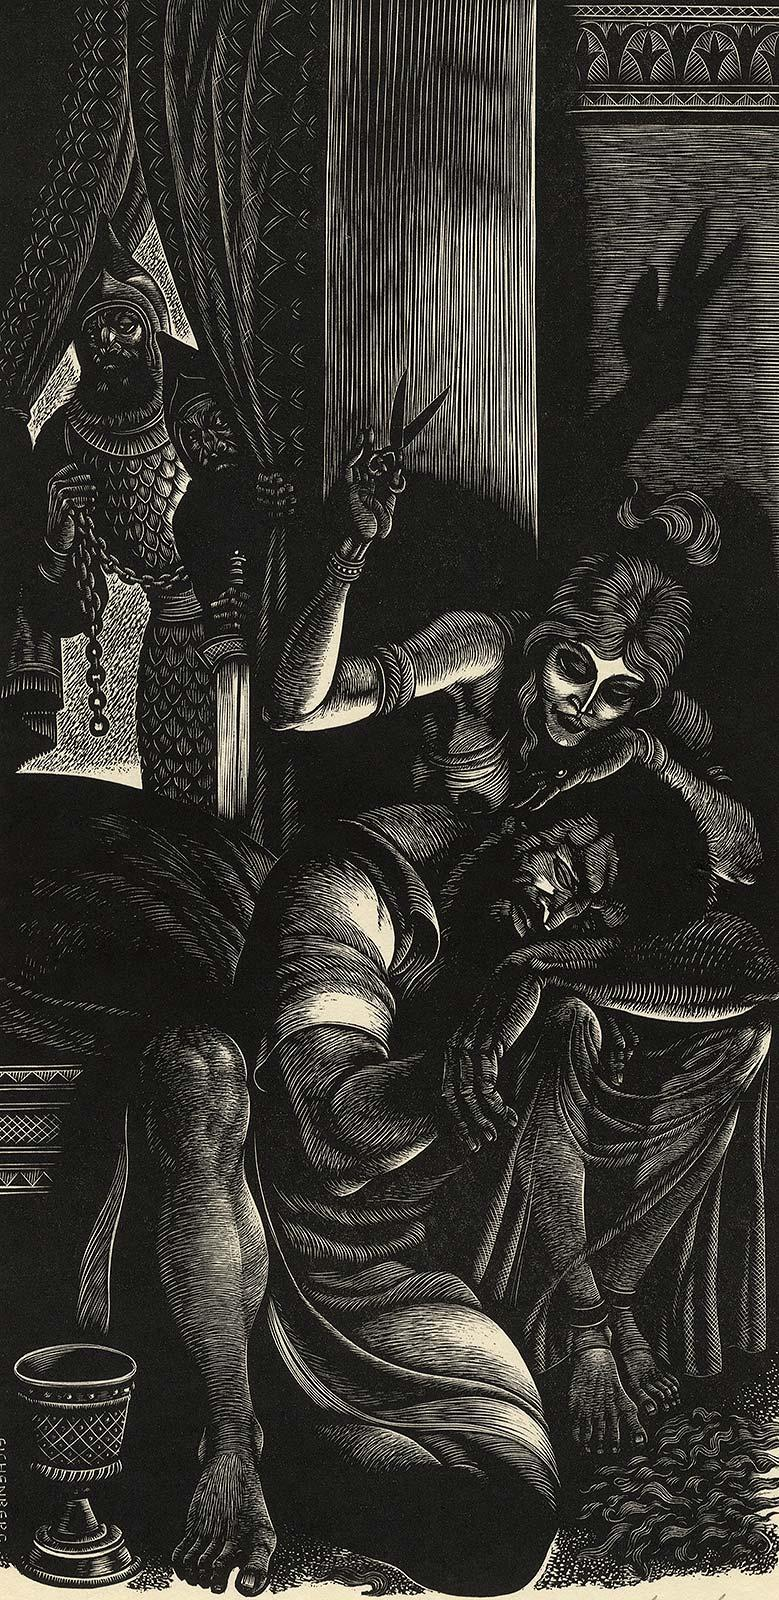 And His Strength Went From Him (Samson And Delilah)